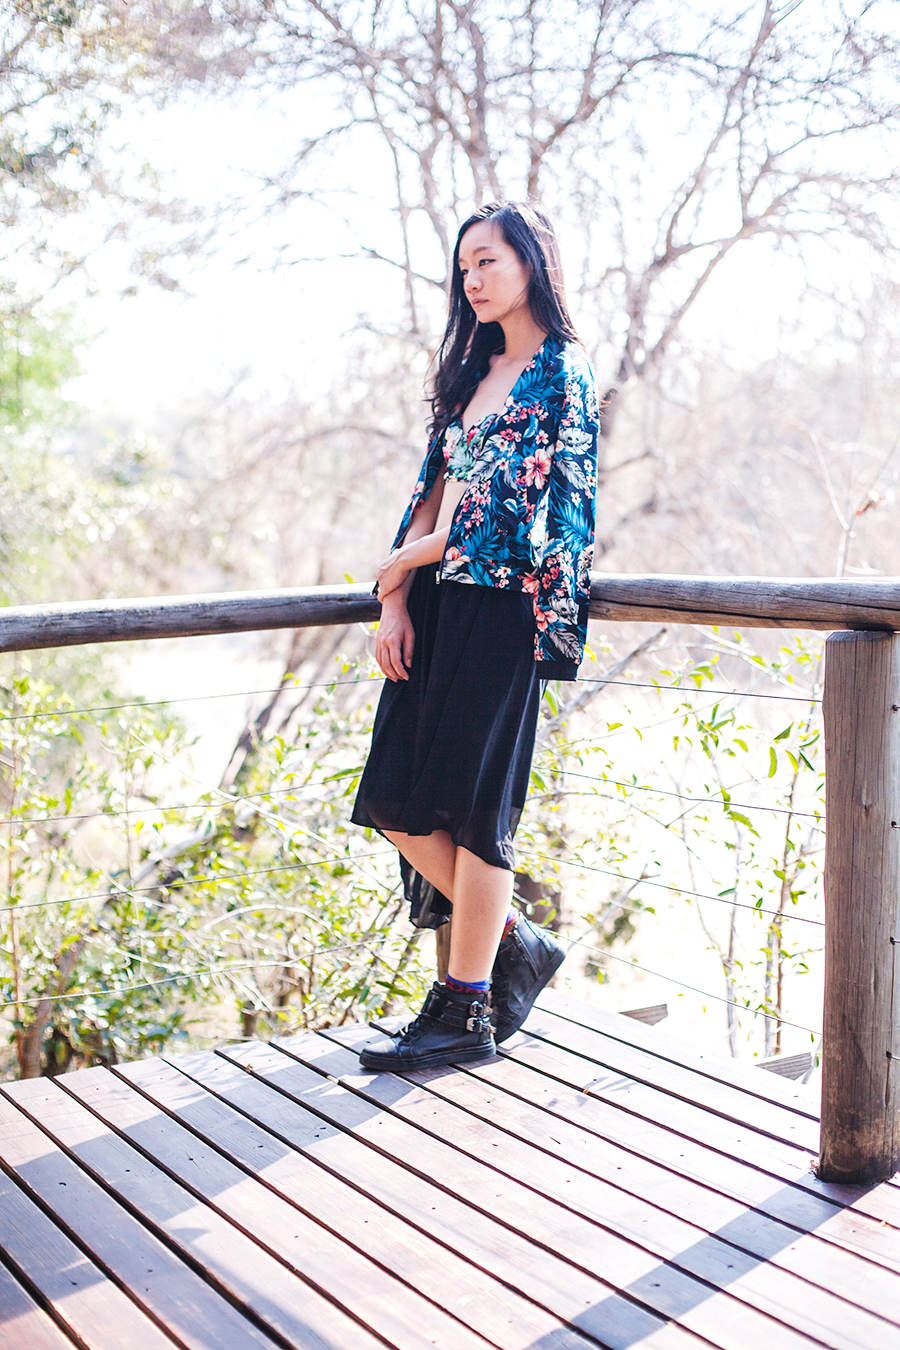 Floral and black outfit for safari, South Africa.